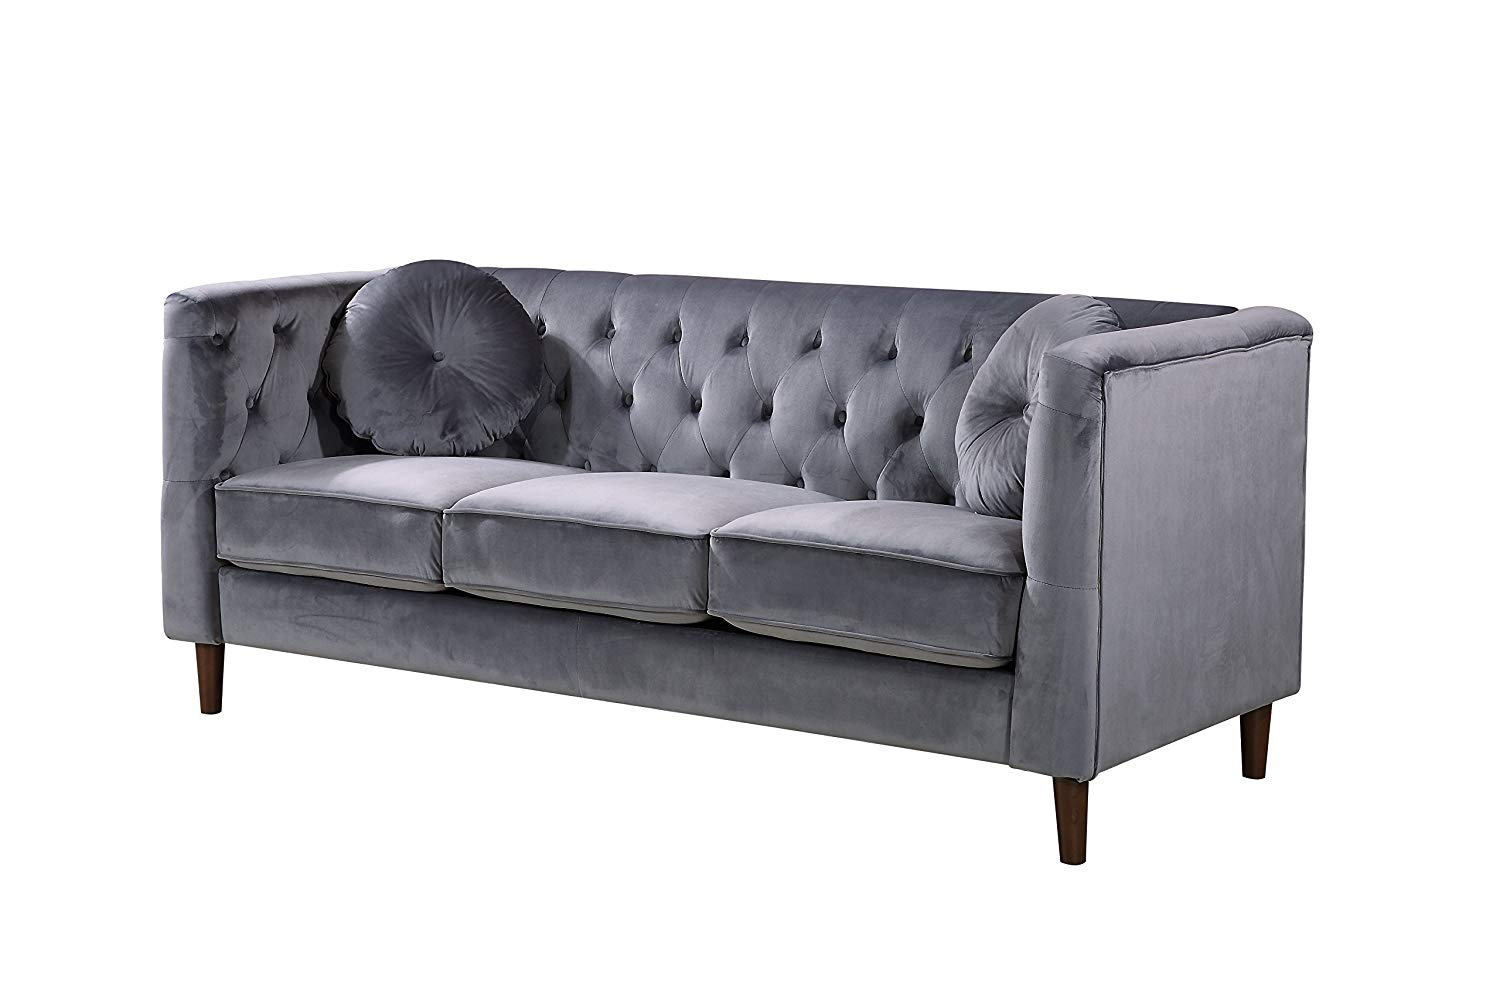 Container Furniture Direct S5374-S Kitts Mid-Century Classic Chesterfield Living Room Sofa, Gray